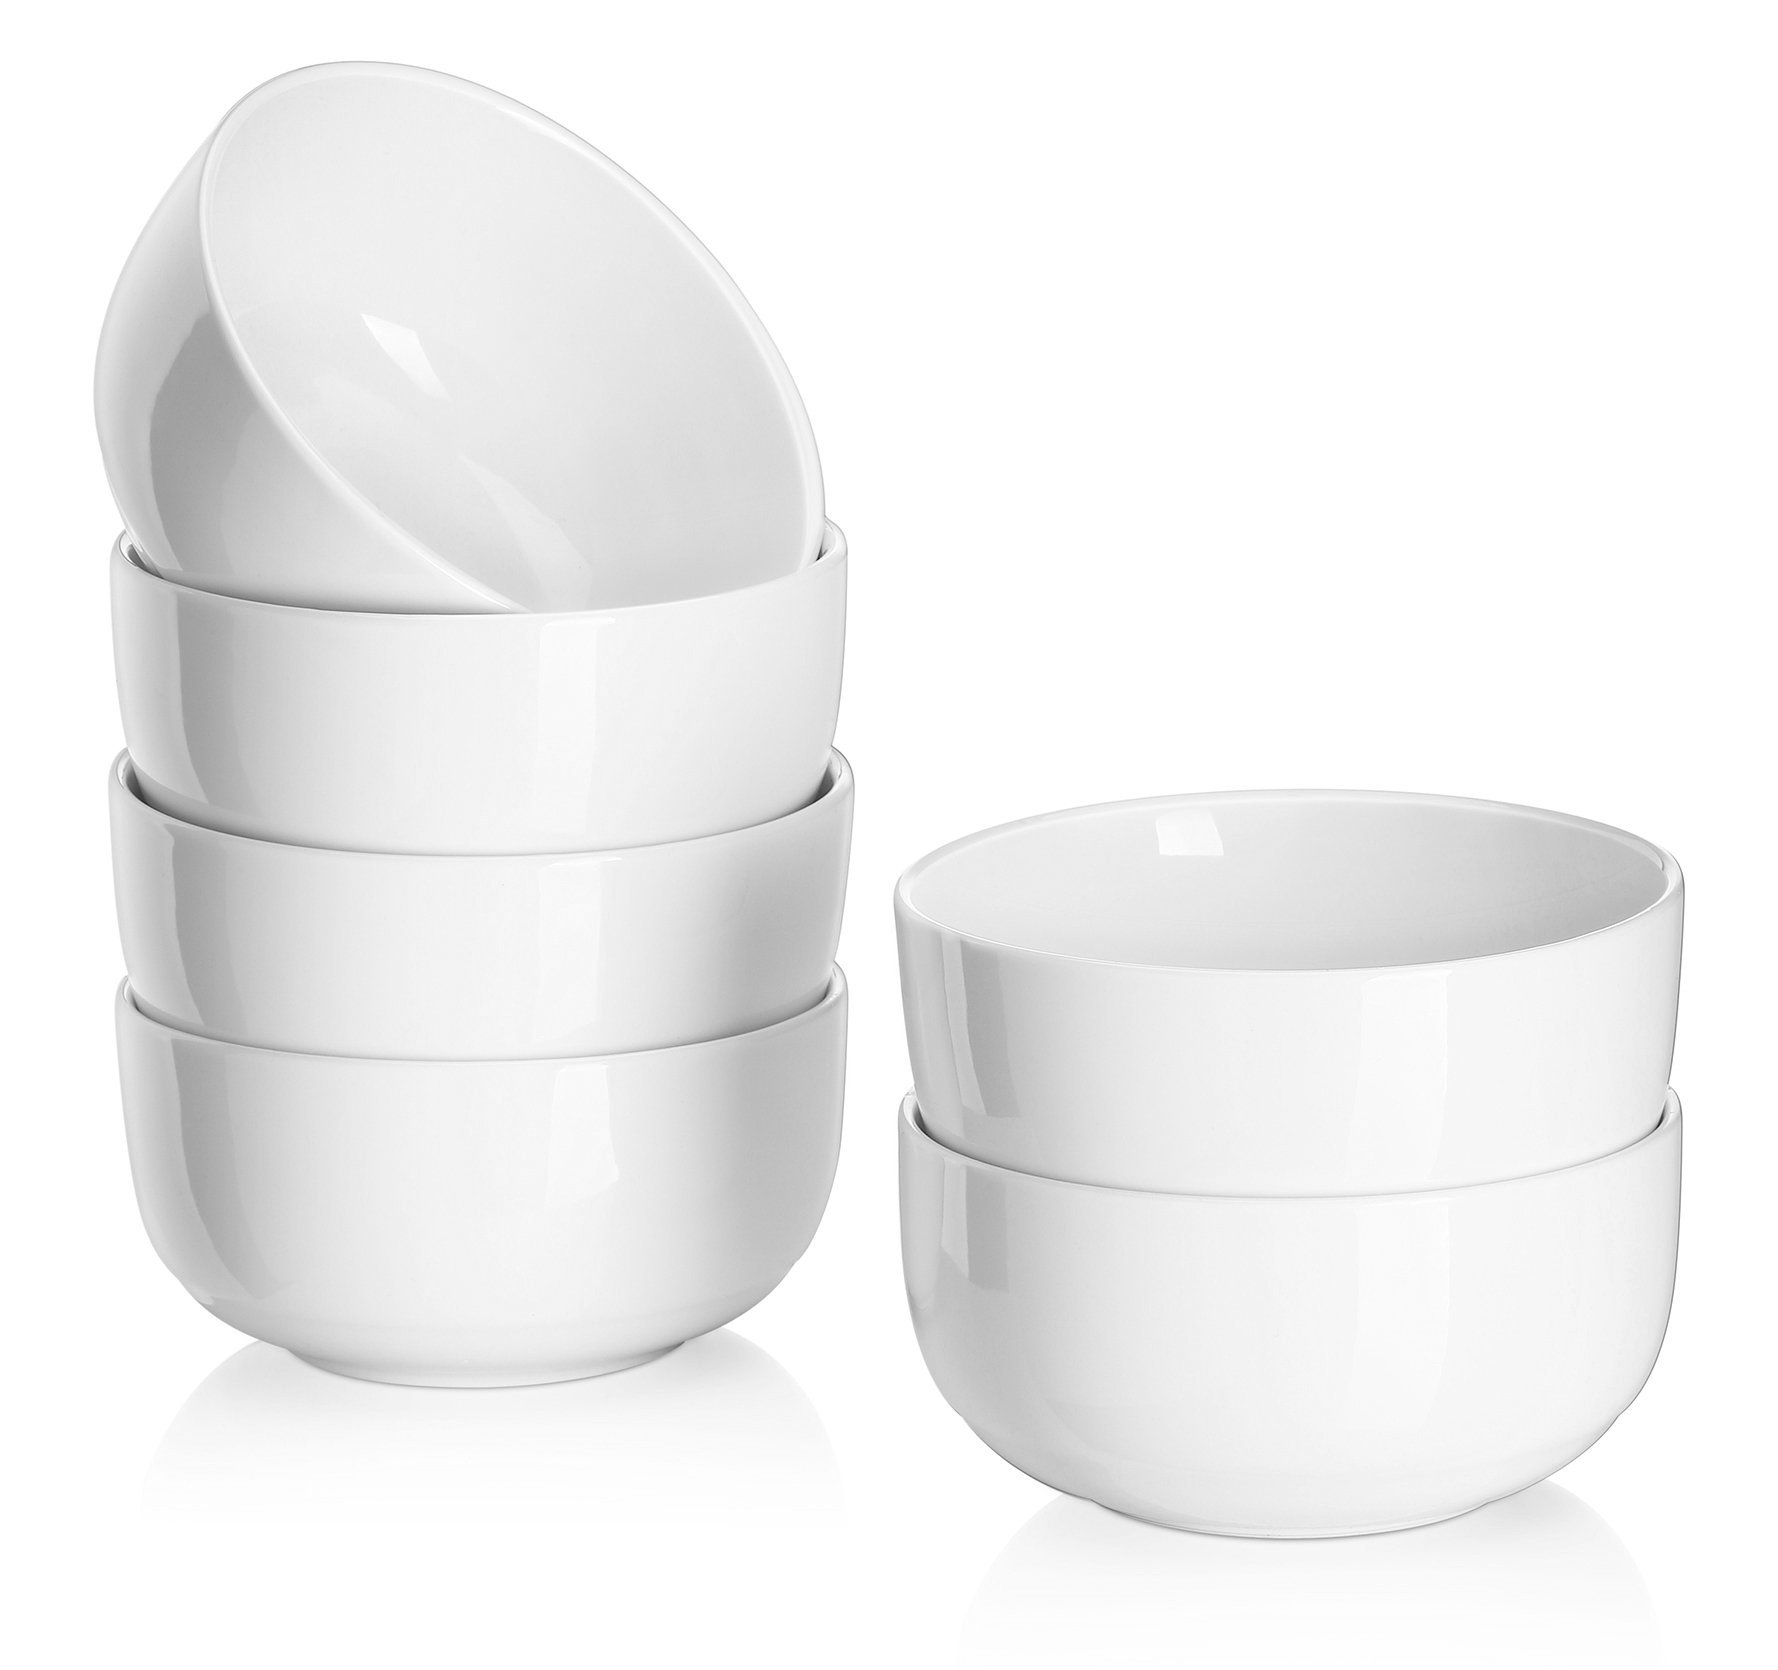 DOWAN 10-Ounce Porcelain Bowl Set - 6 Packs,White by DOWAN (Image #1)